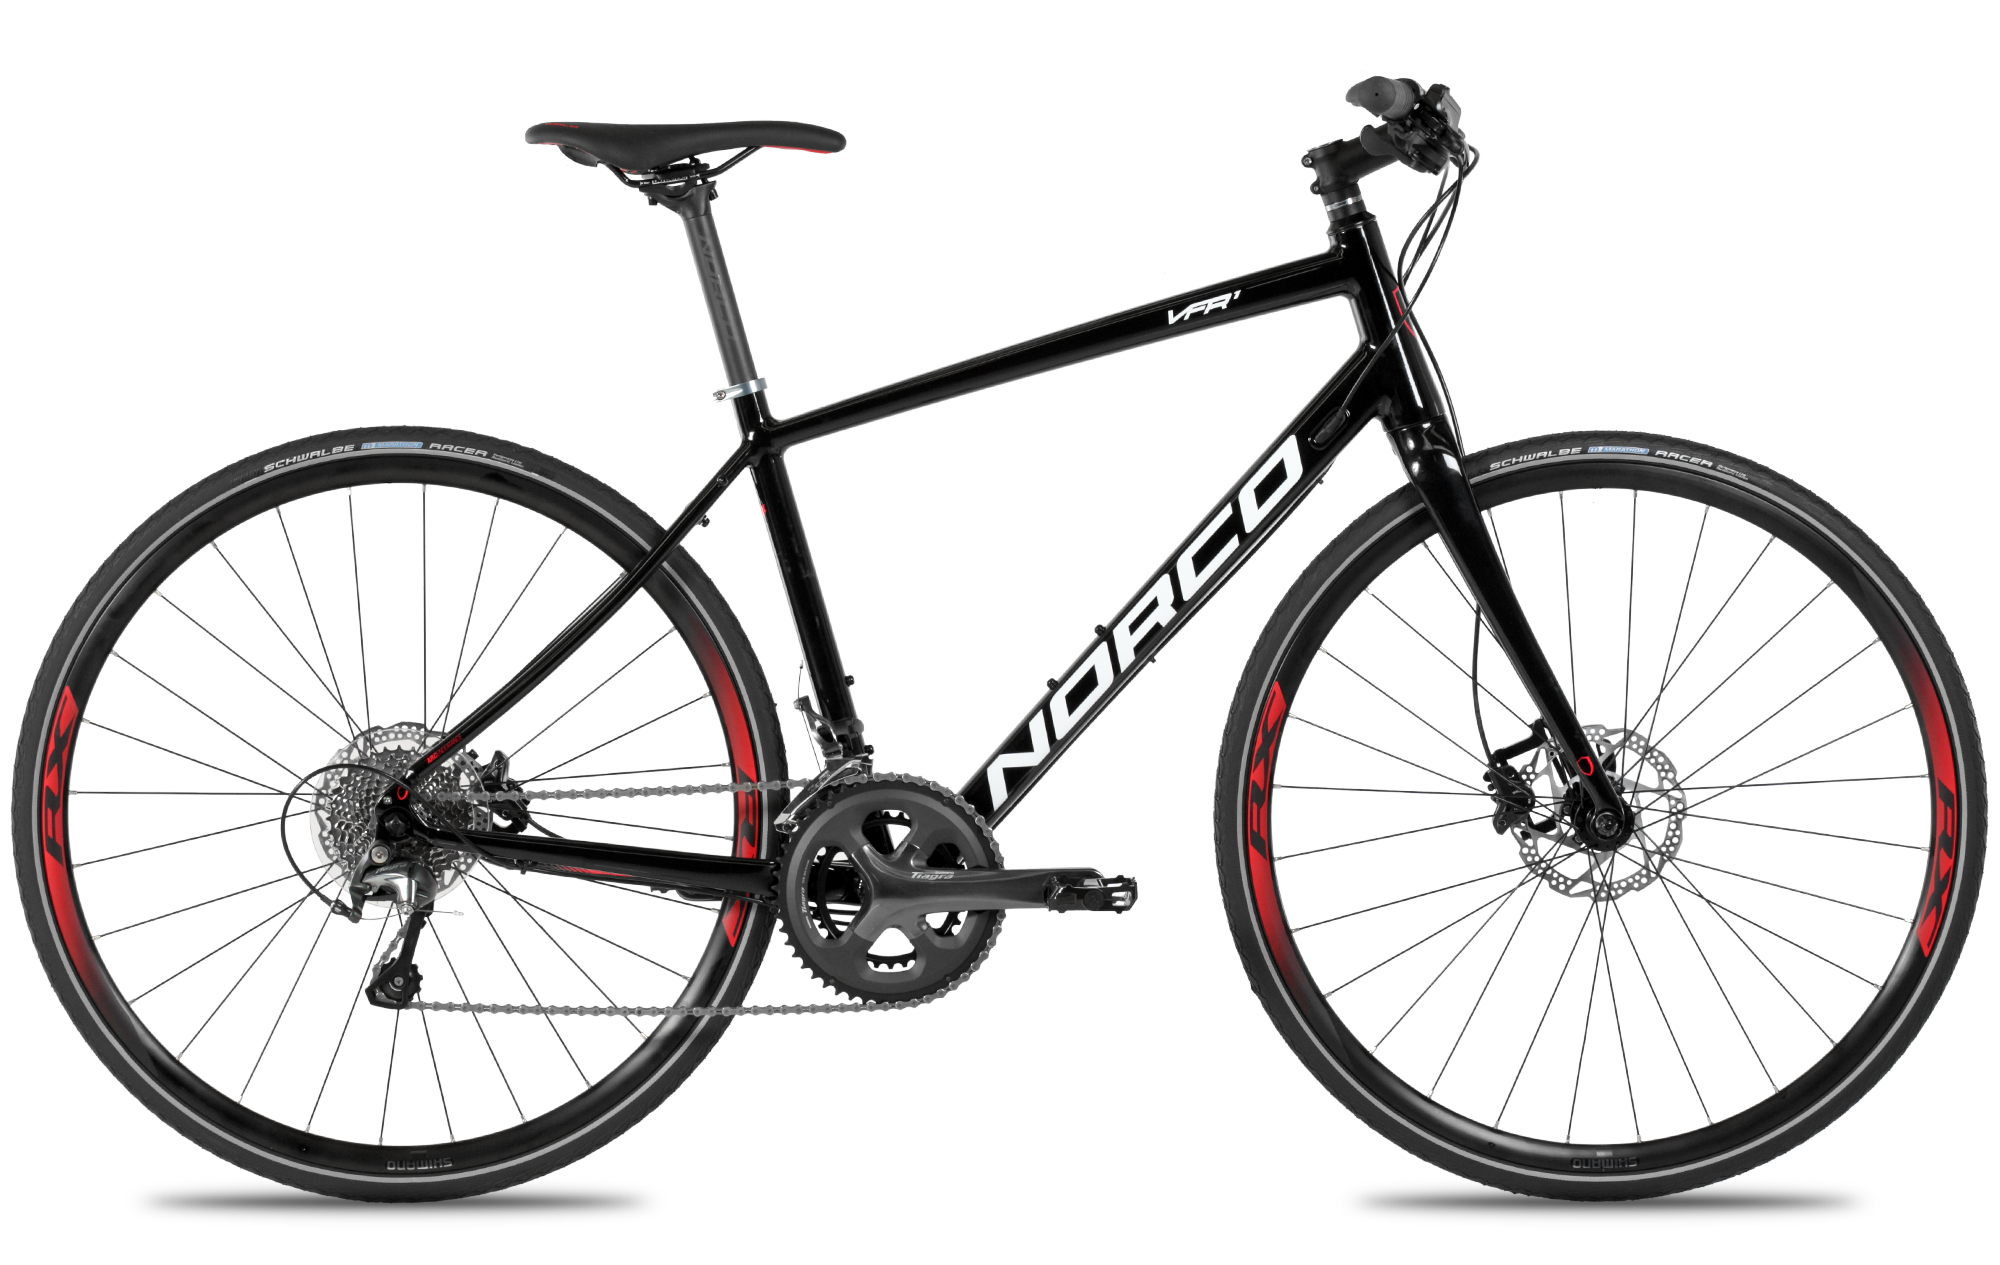 NORCO VFR 1